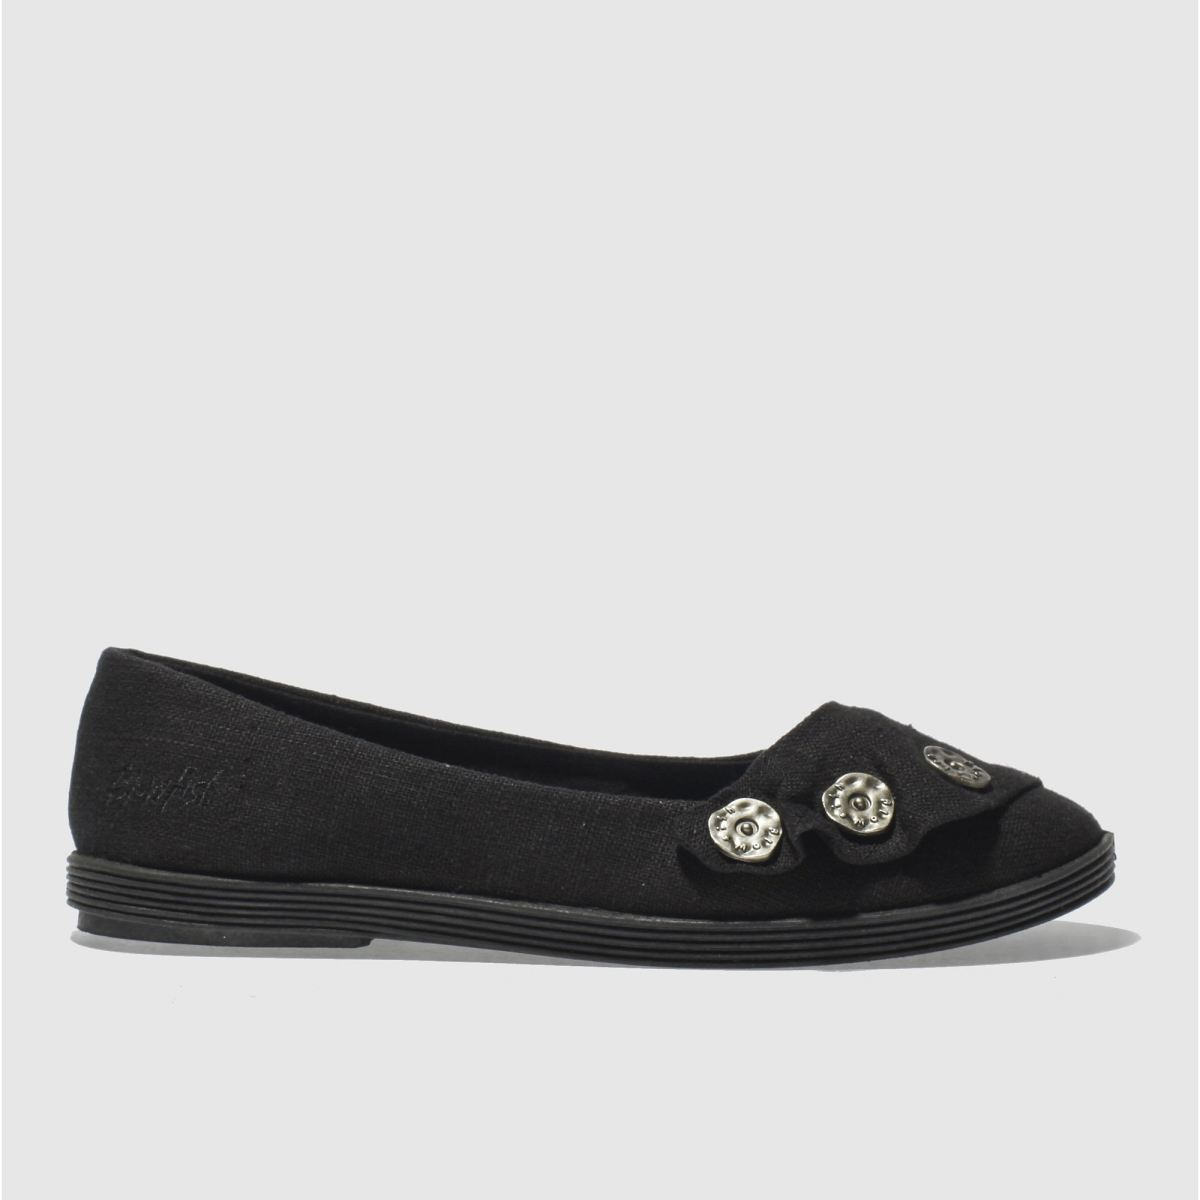 Photo of Blowfish black garden linen flats